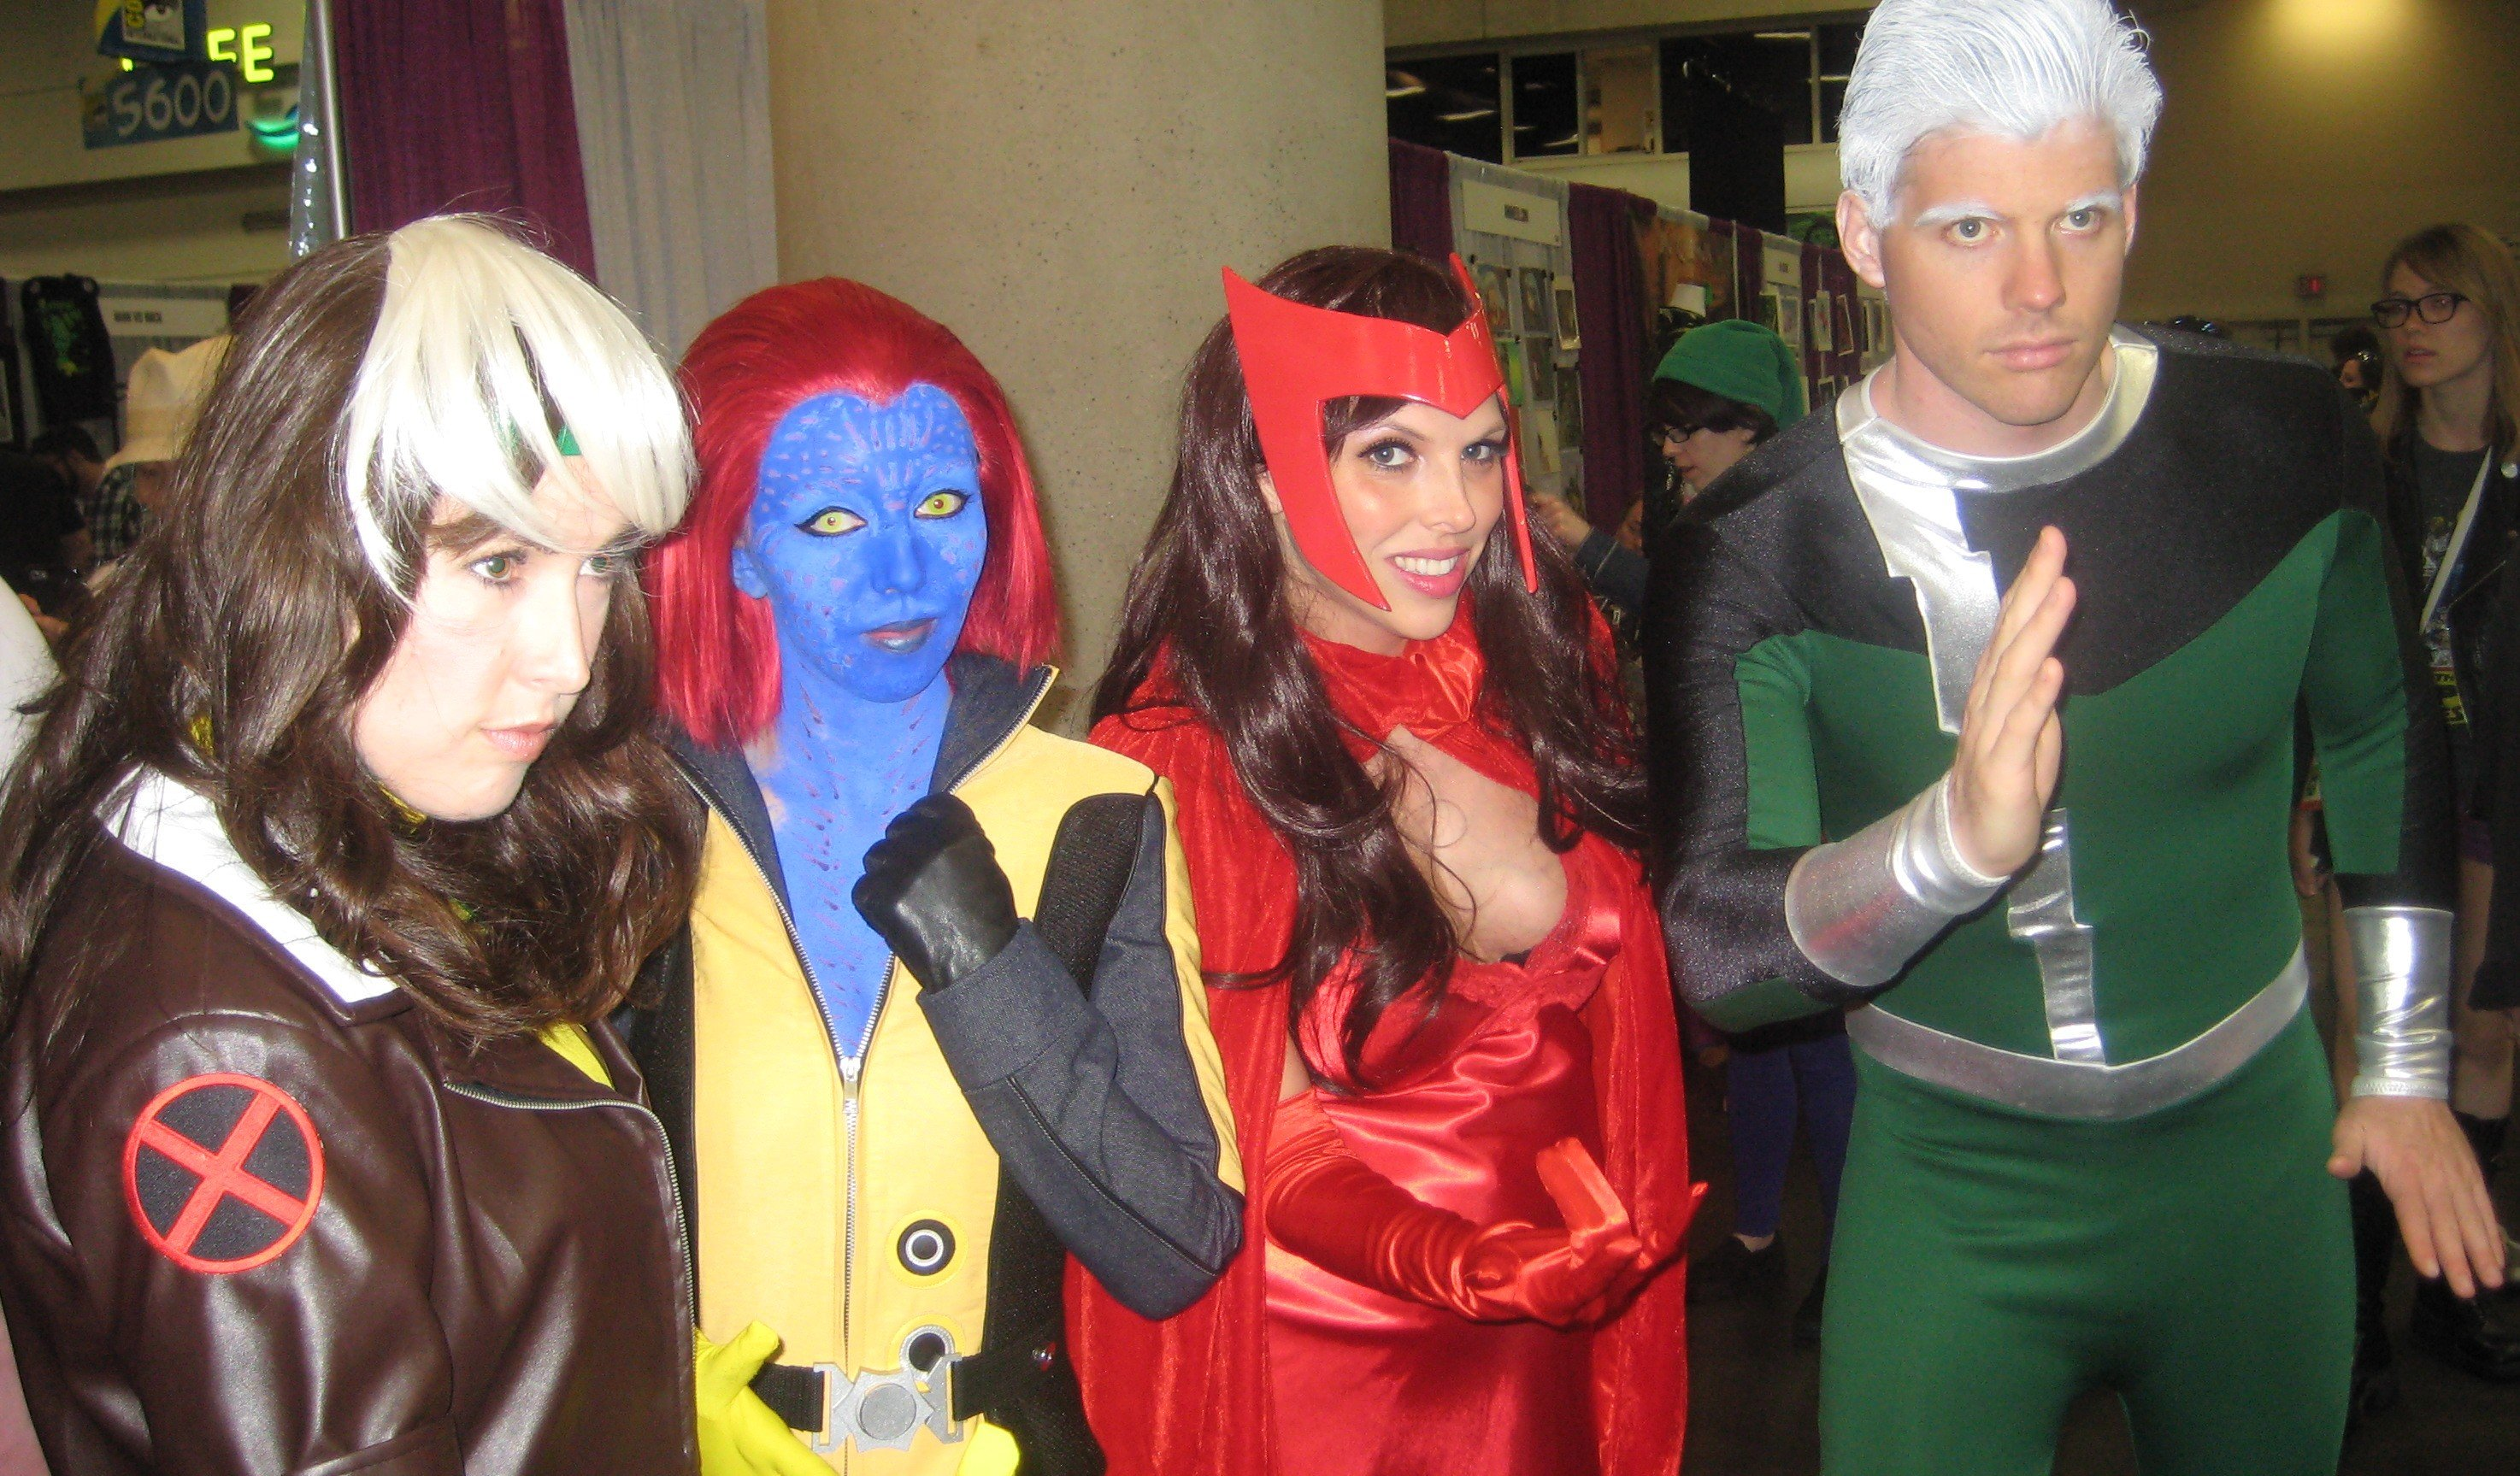 Comic-Con 2015: X-Men (Rogue and Mystique) and Avengers